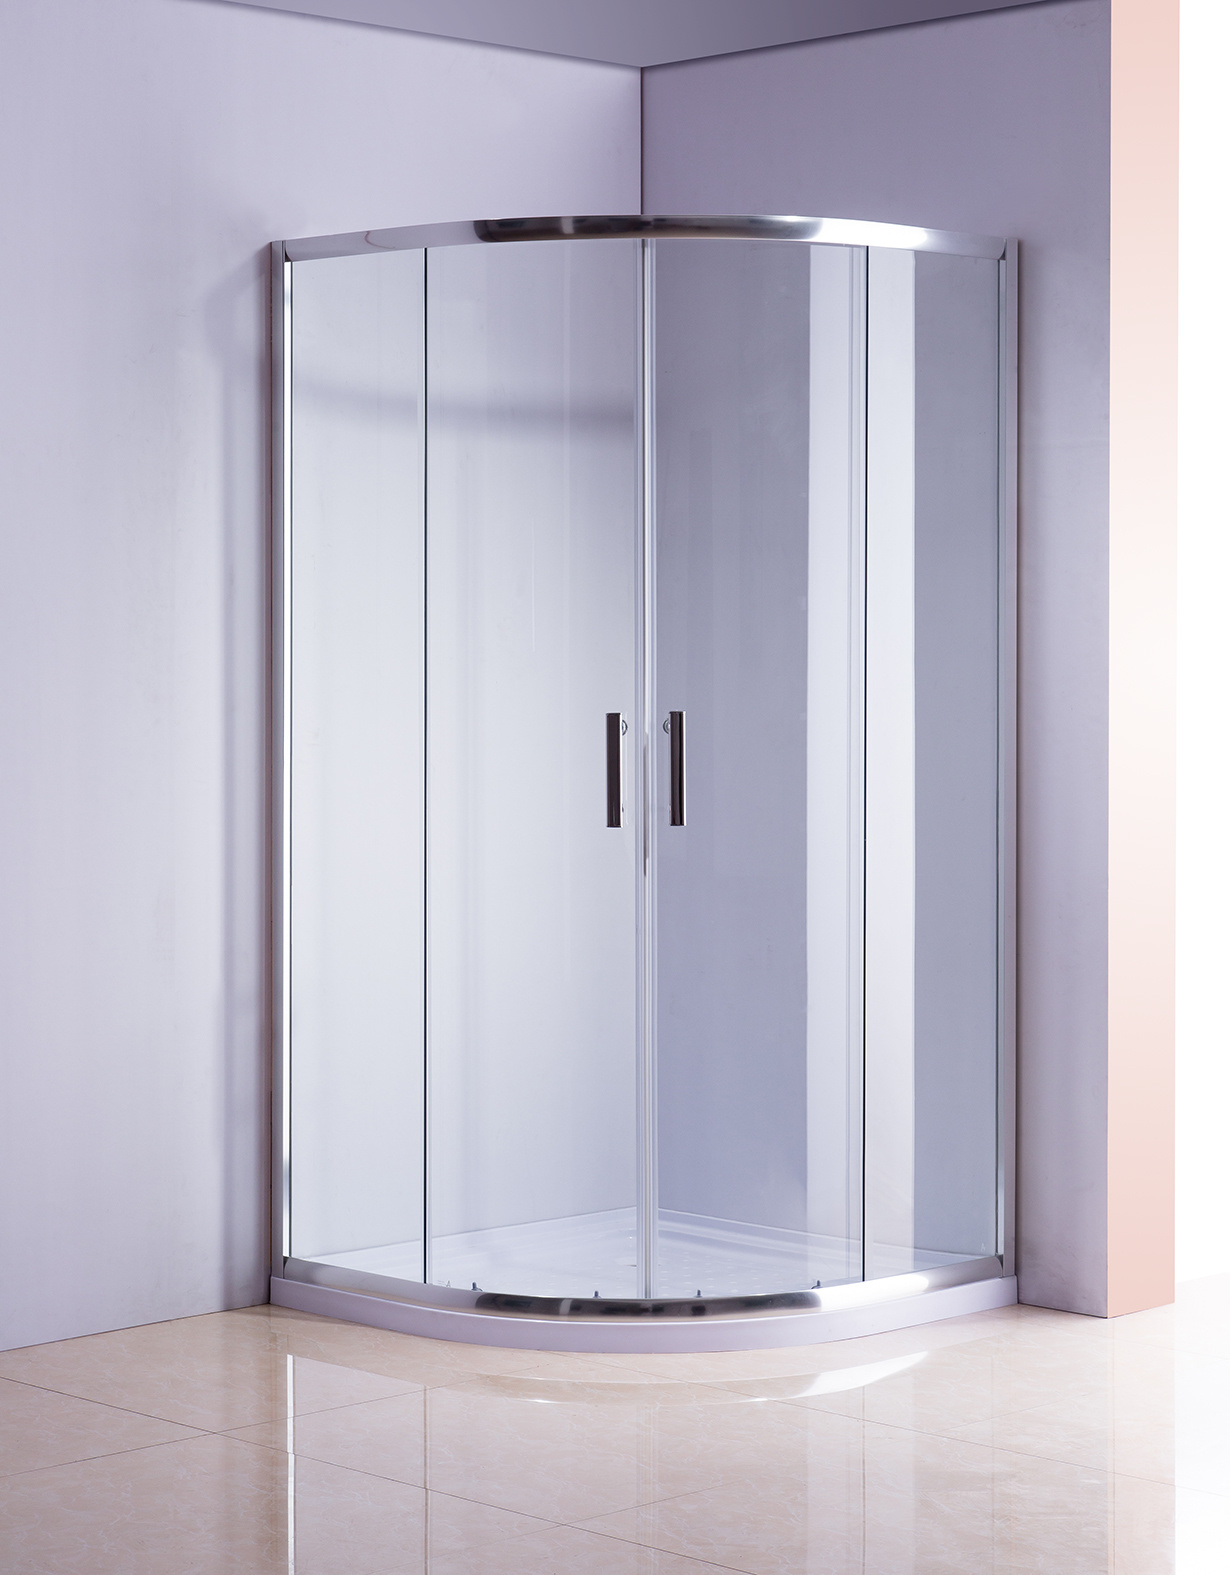 Rounded Sliding Curved Framed Shower Screen 6mm Toughened Glass with Base  Z2727